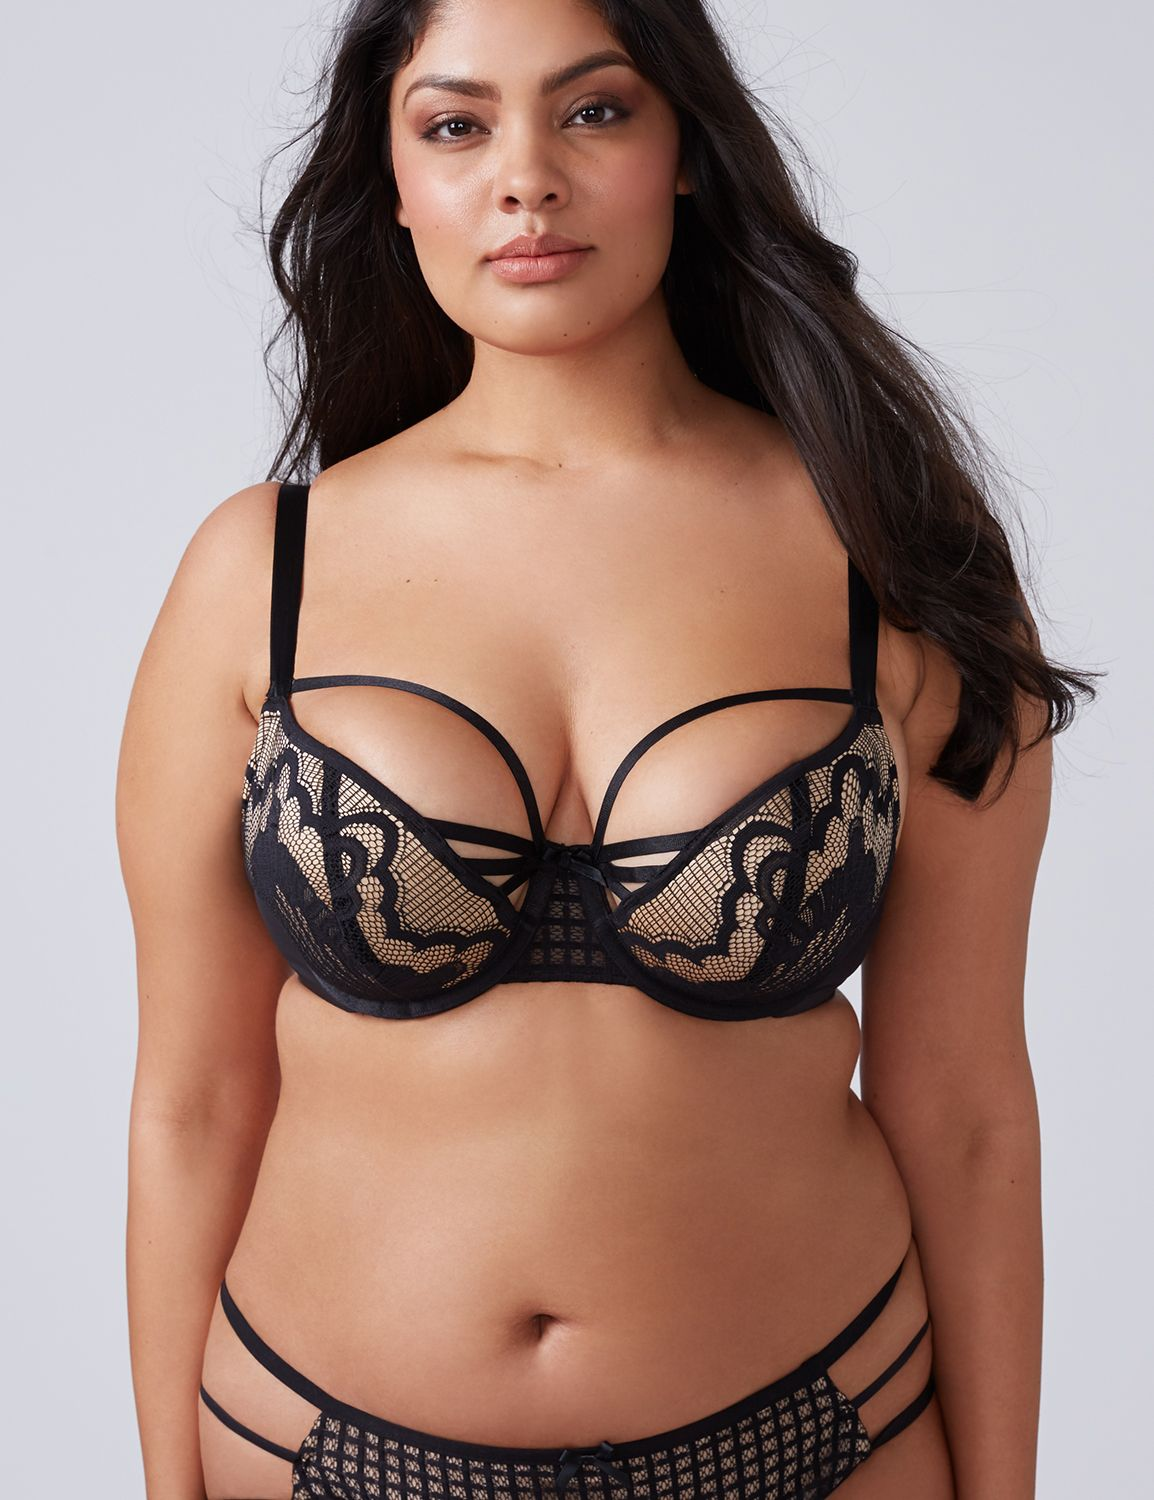 cacique plus size lingerie | sexy sleepwear & nighties | lane bryant